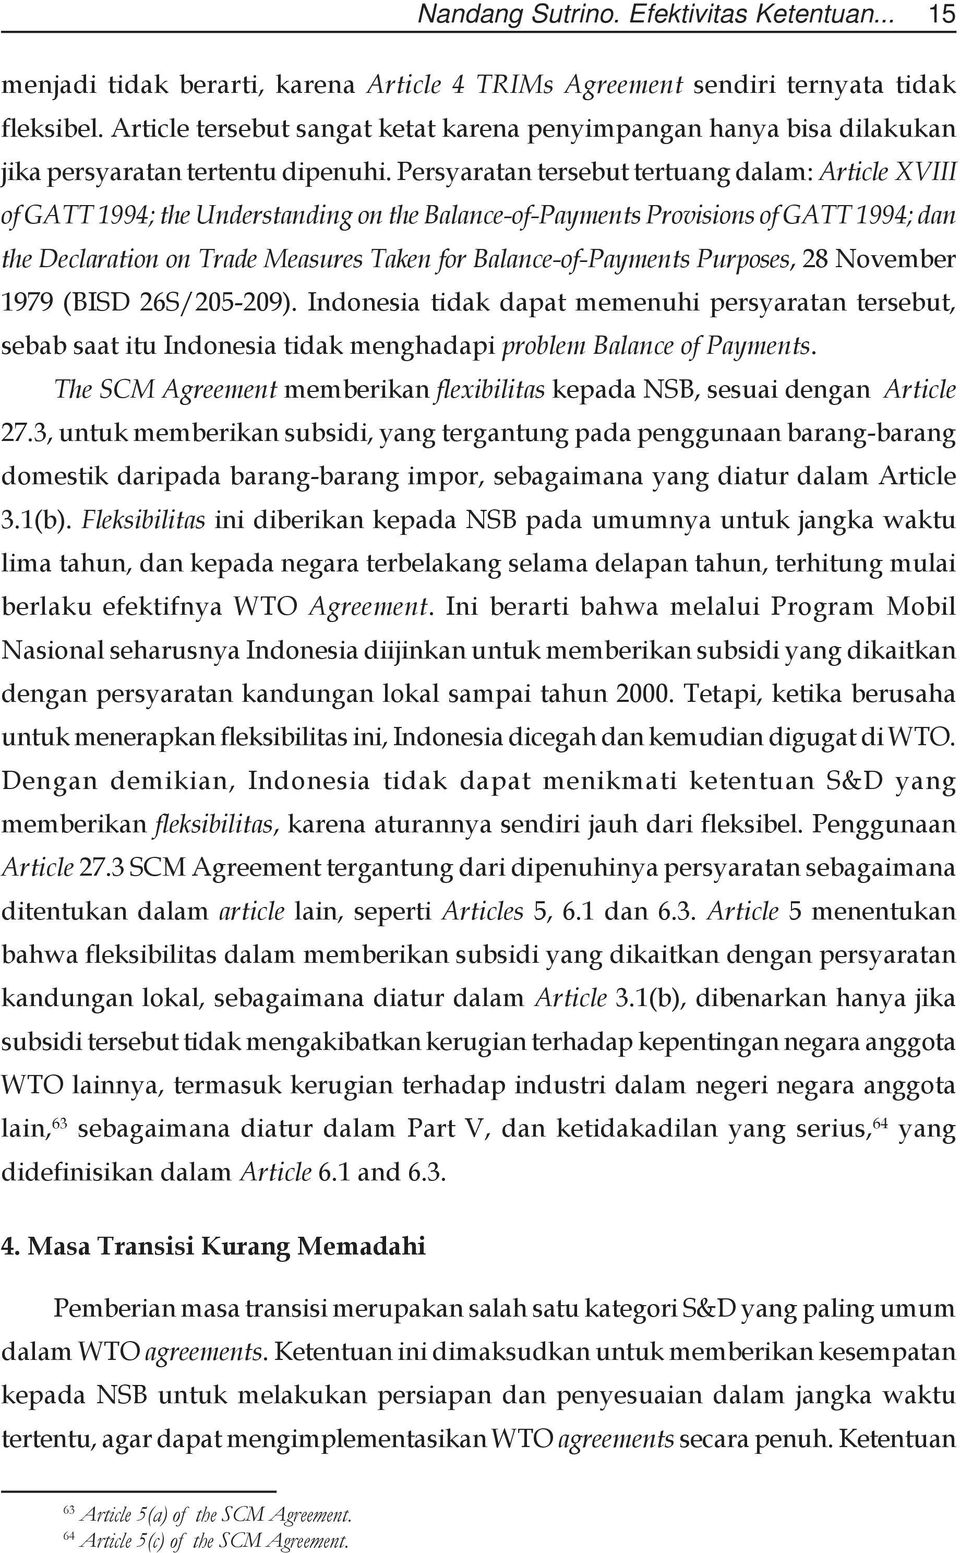 Persyaratan tersebut tertuang dalam: Article XVIII of GATT 1994; the Understanding on the Balance-of-Payments Provisions of GATT 1994; dan the Declaration on Trade Measures Taken for